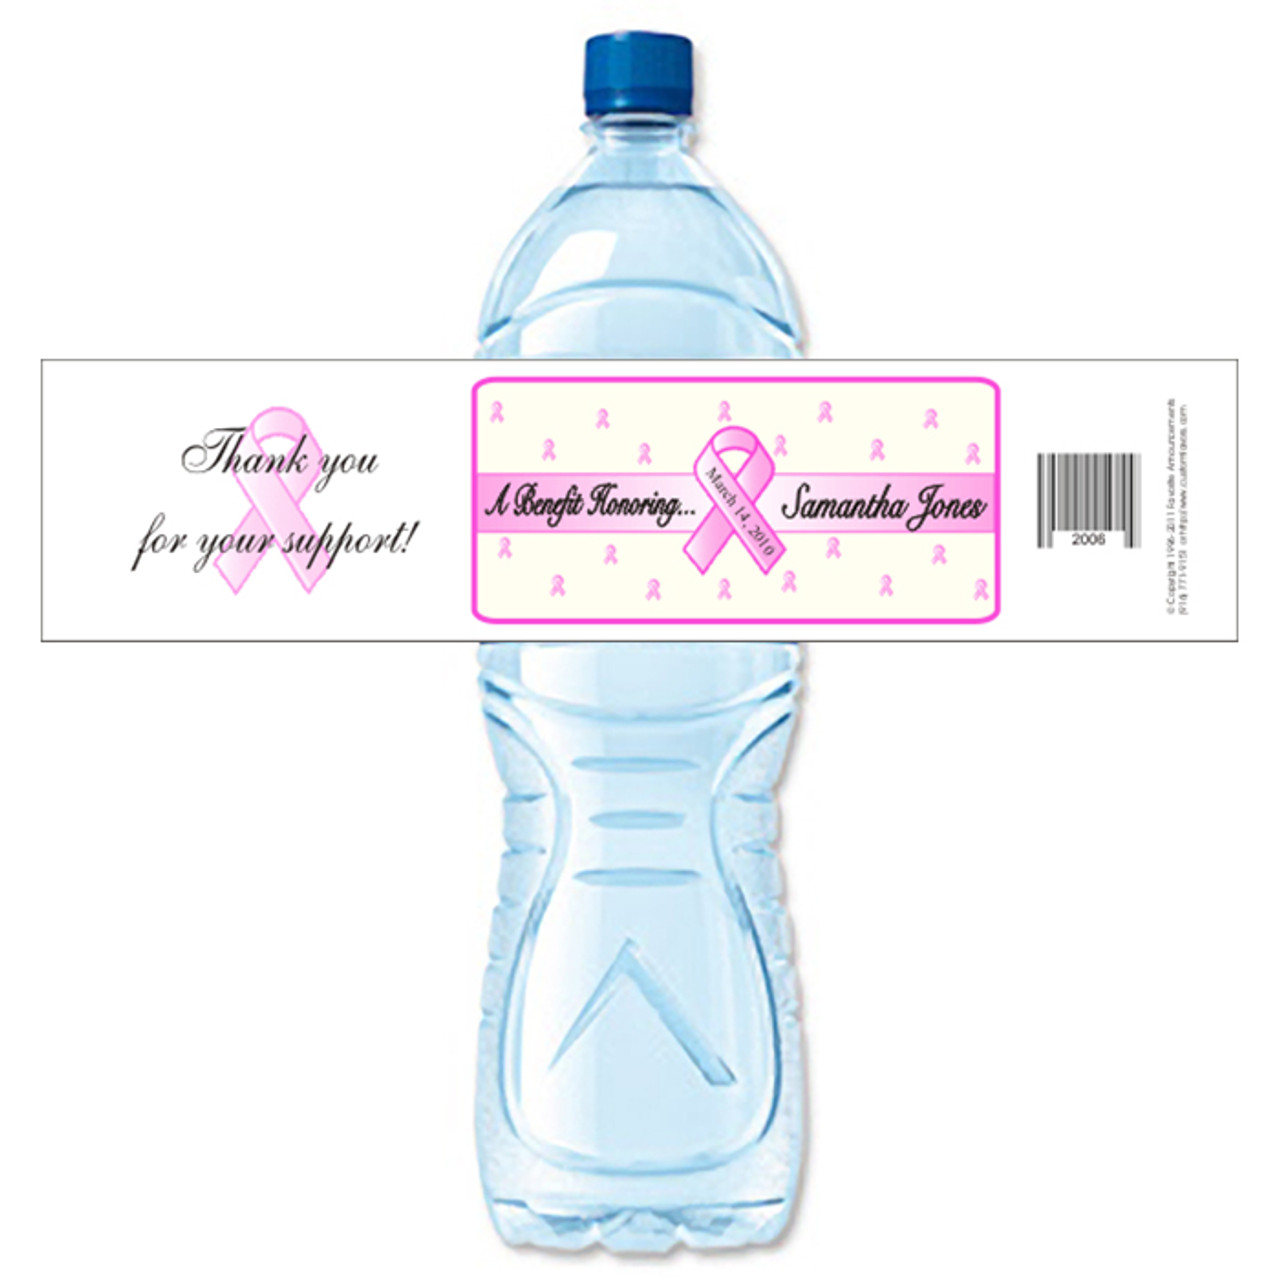 Share plastic water bottles breast cancer think, that